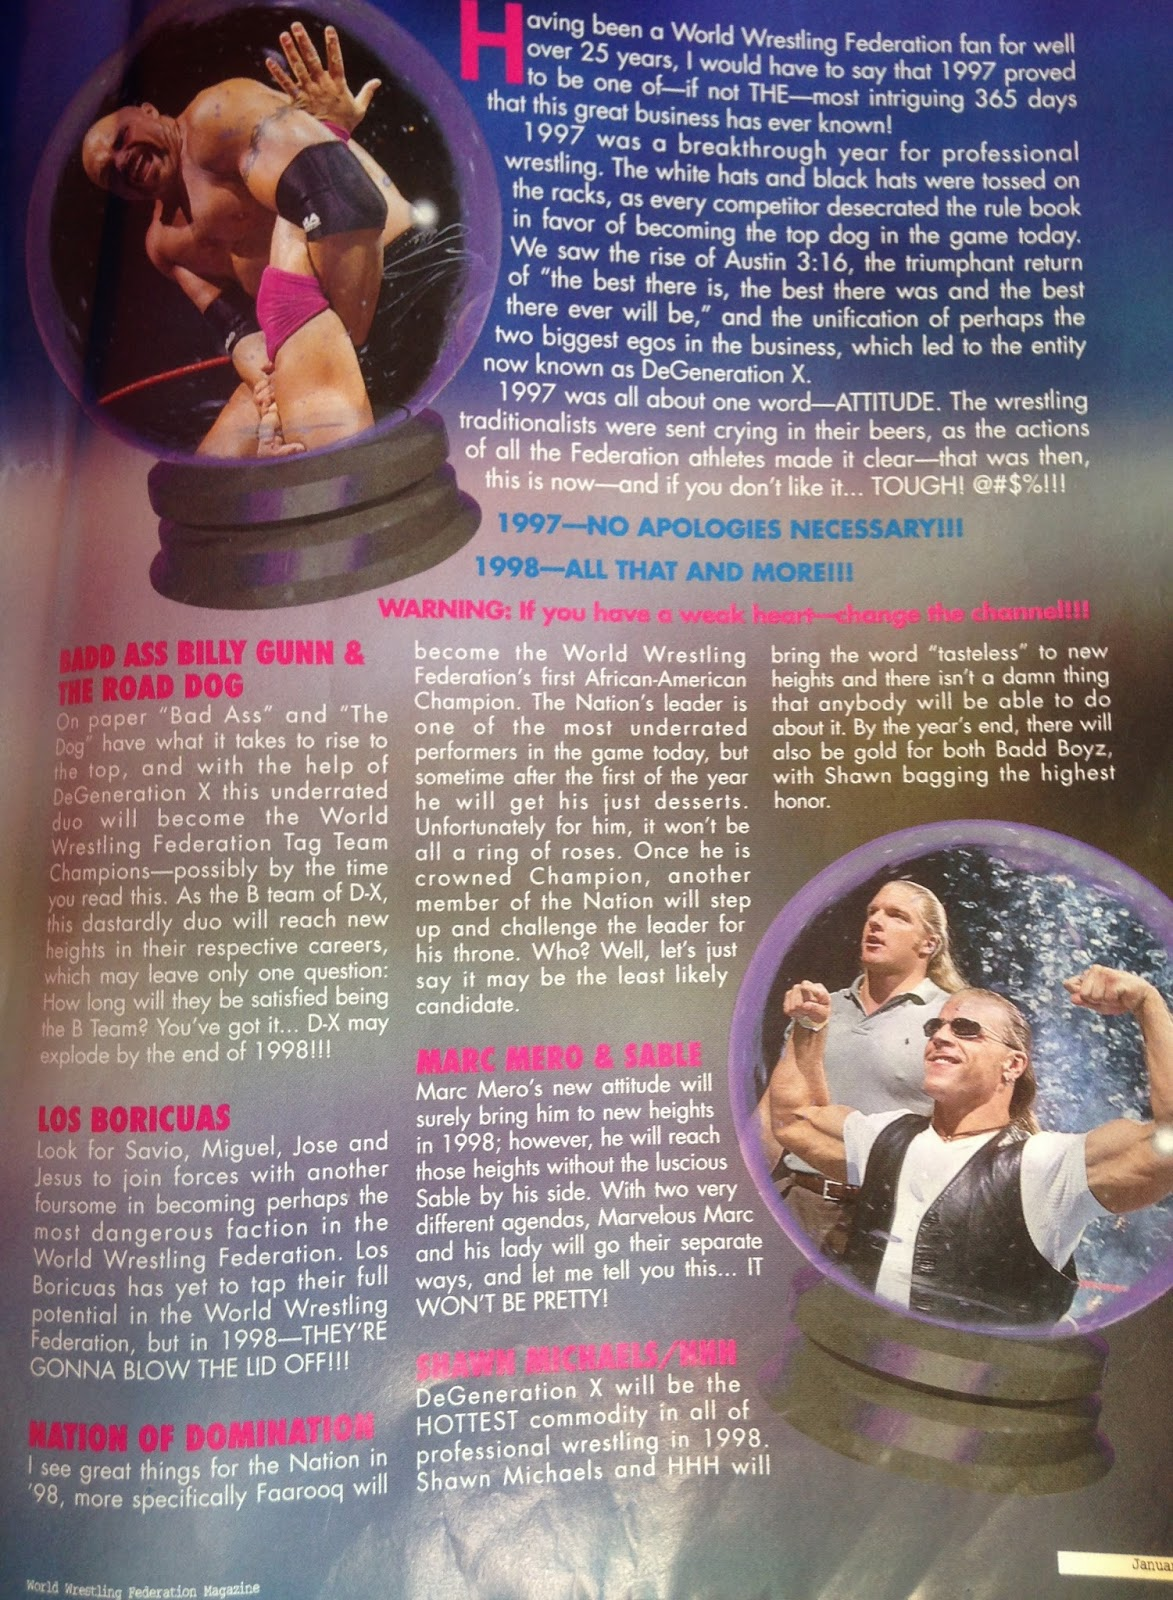 WWF MAGAZINE - JANUARY 1998 - 1998 predictions